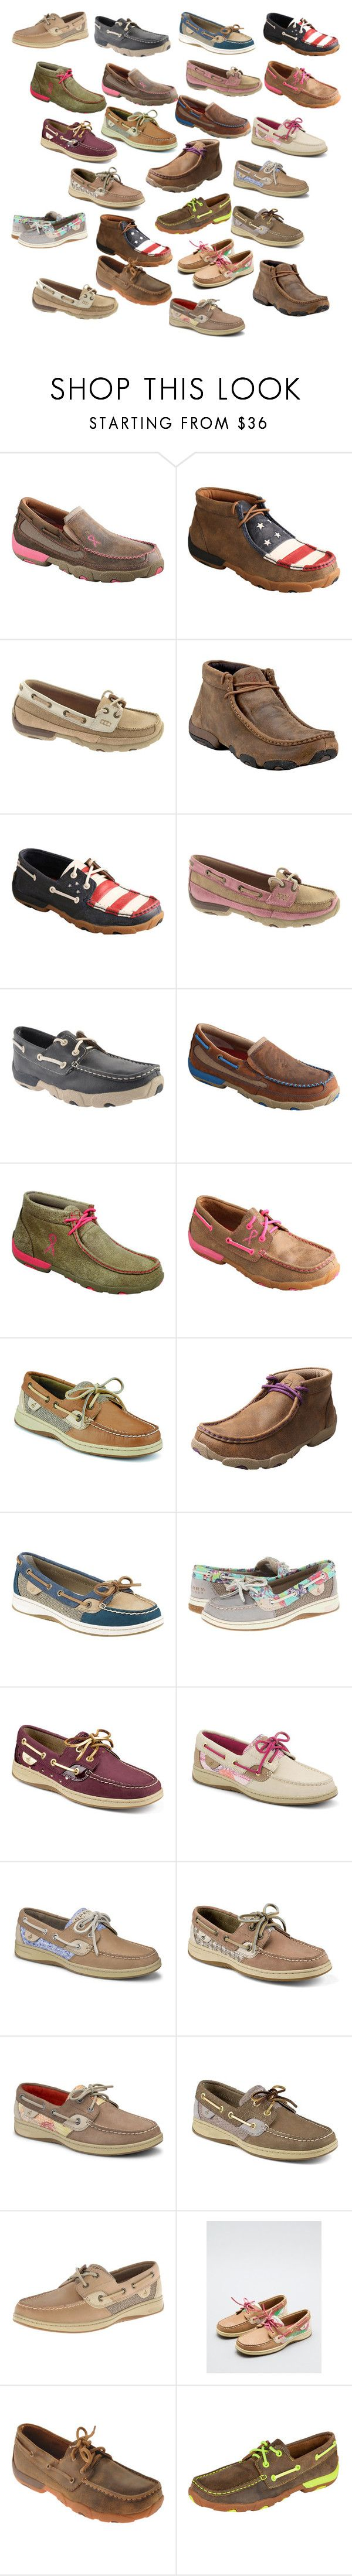 """""""Sperry's and twisted x's <3"""" by julies2001 ❤ liked on Polyvore featuring Twisted X Boots and Sperry Top-Sider"""